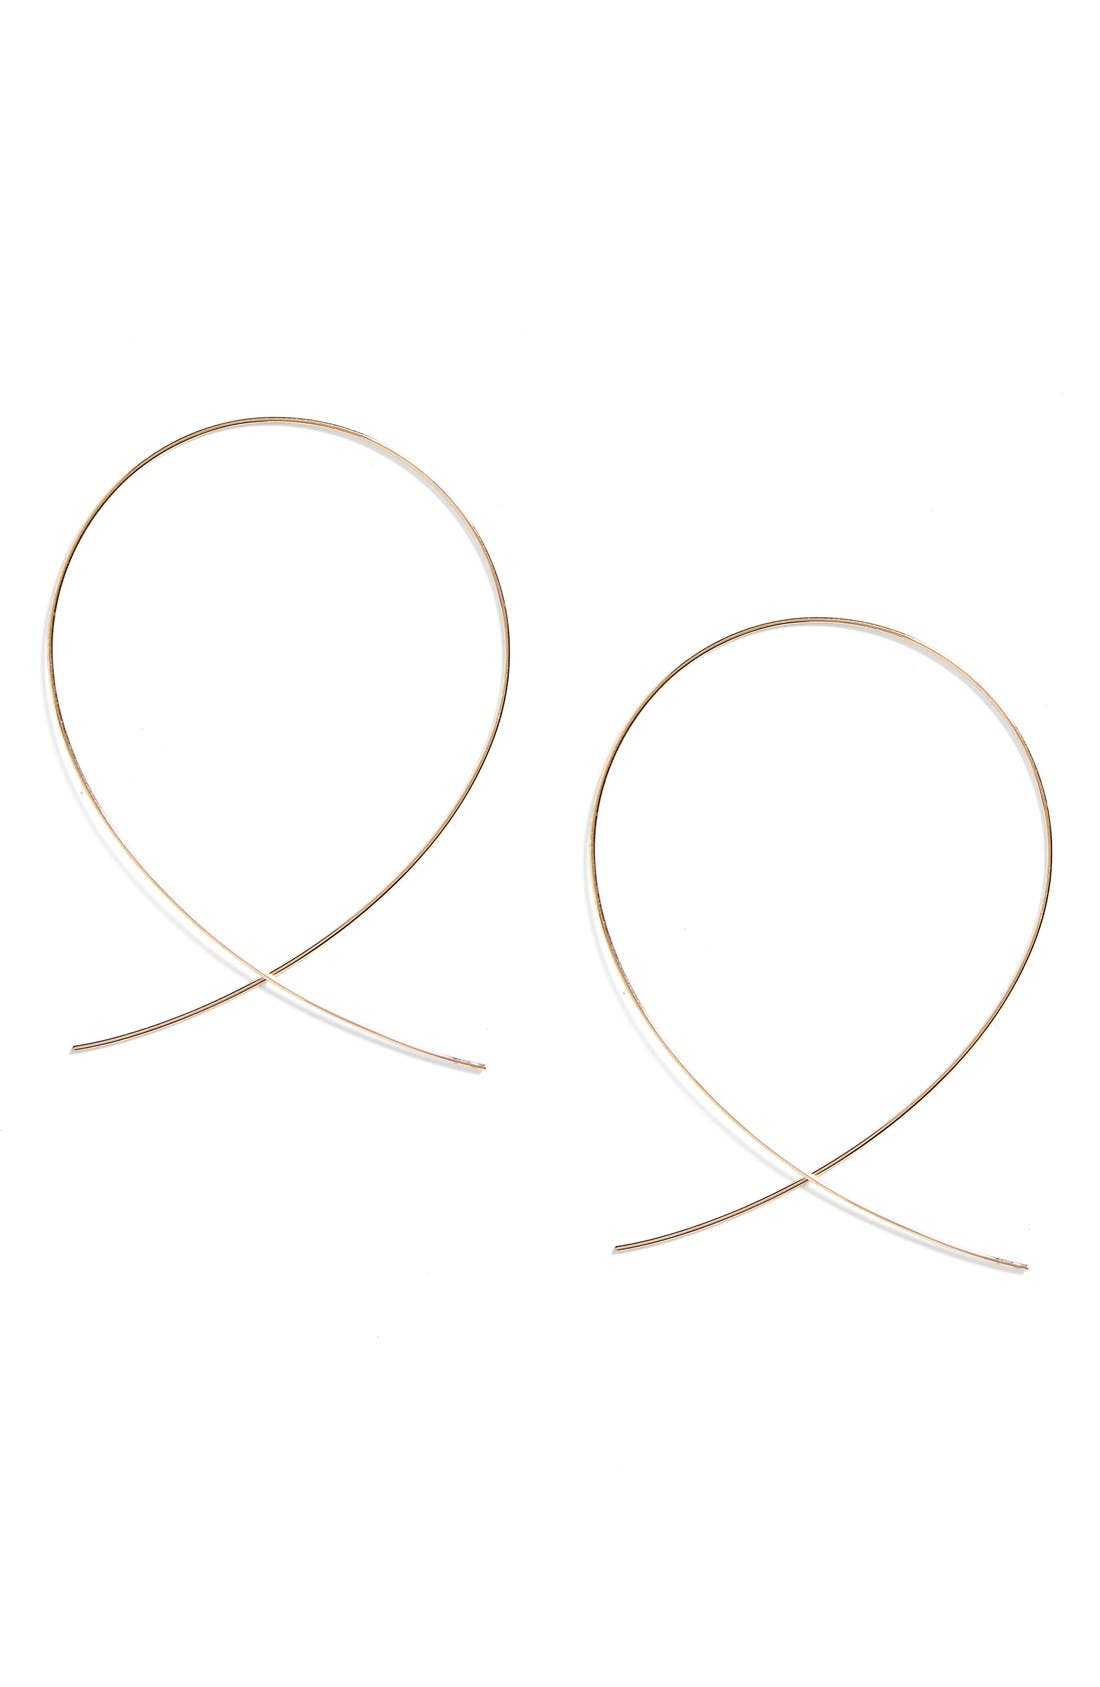 Lana Jewelry 'Large Upside Down' Hoop Earrings